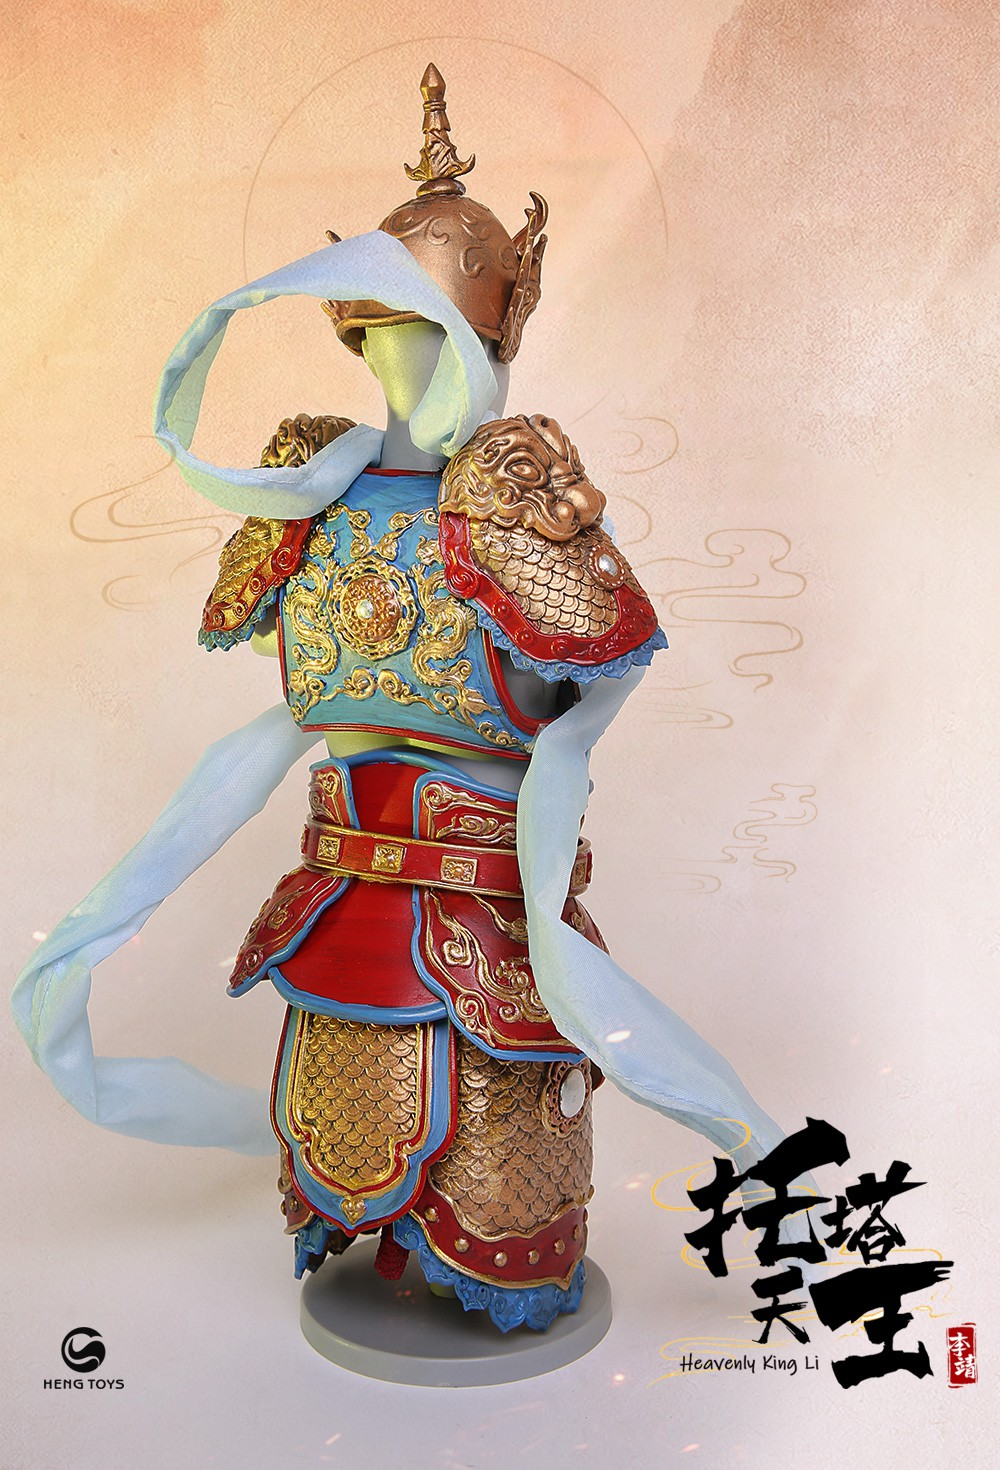 NEW PRODUCT: HENG TOYS: 1/6 Chinese Mythology Taoist Protector God Heavenly King Li, Li Tianwang action figure (PE-005) 14035910